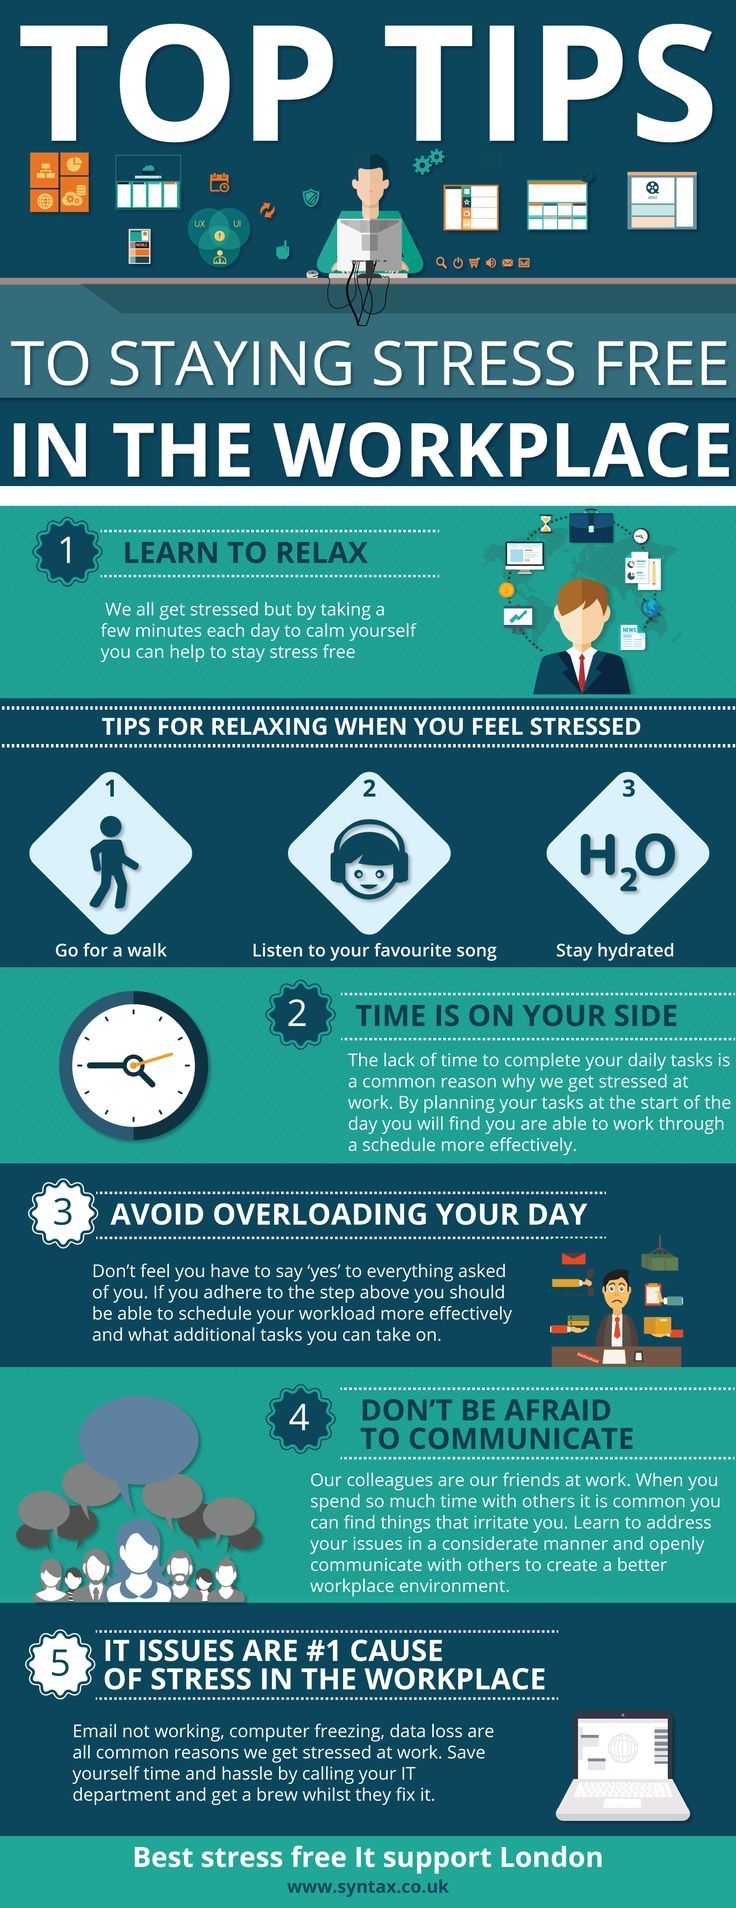 Top Tips To Staying Stress Free at Work #Infographic #Workplace #Stress